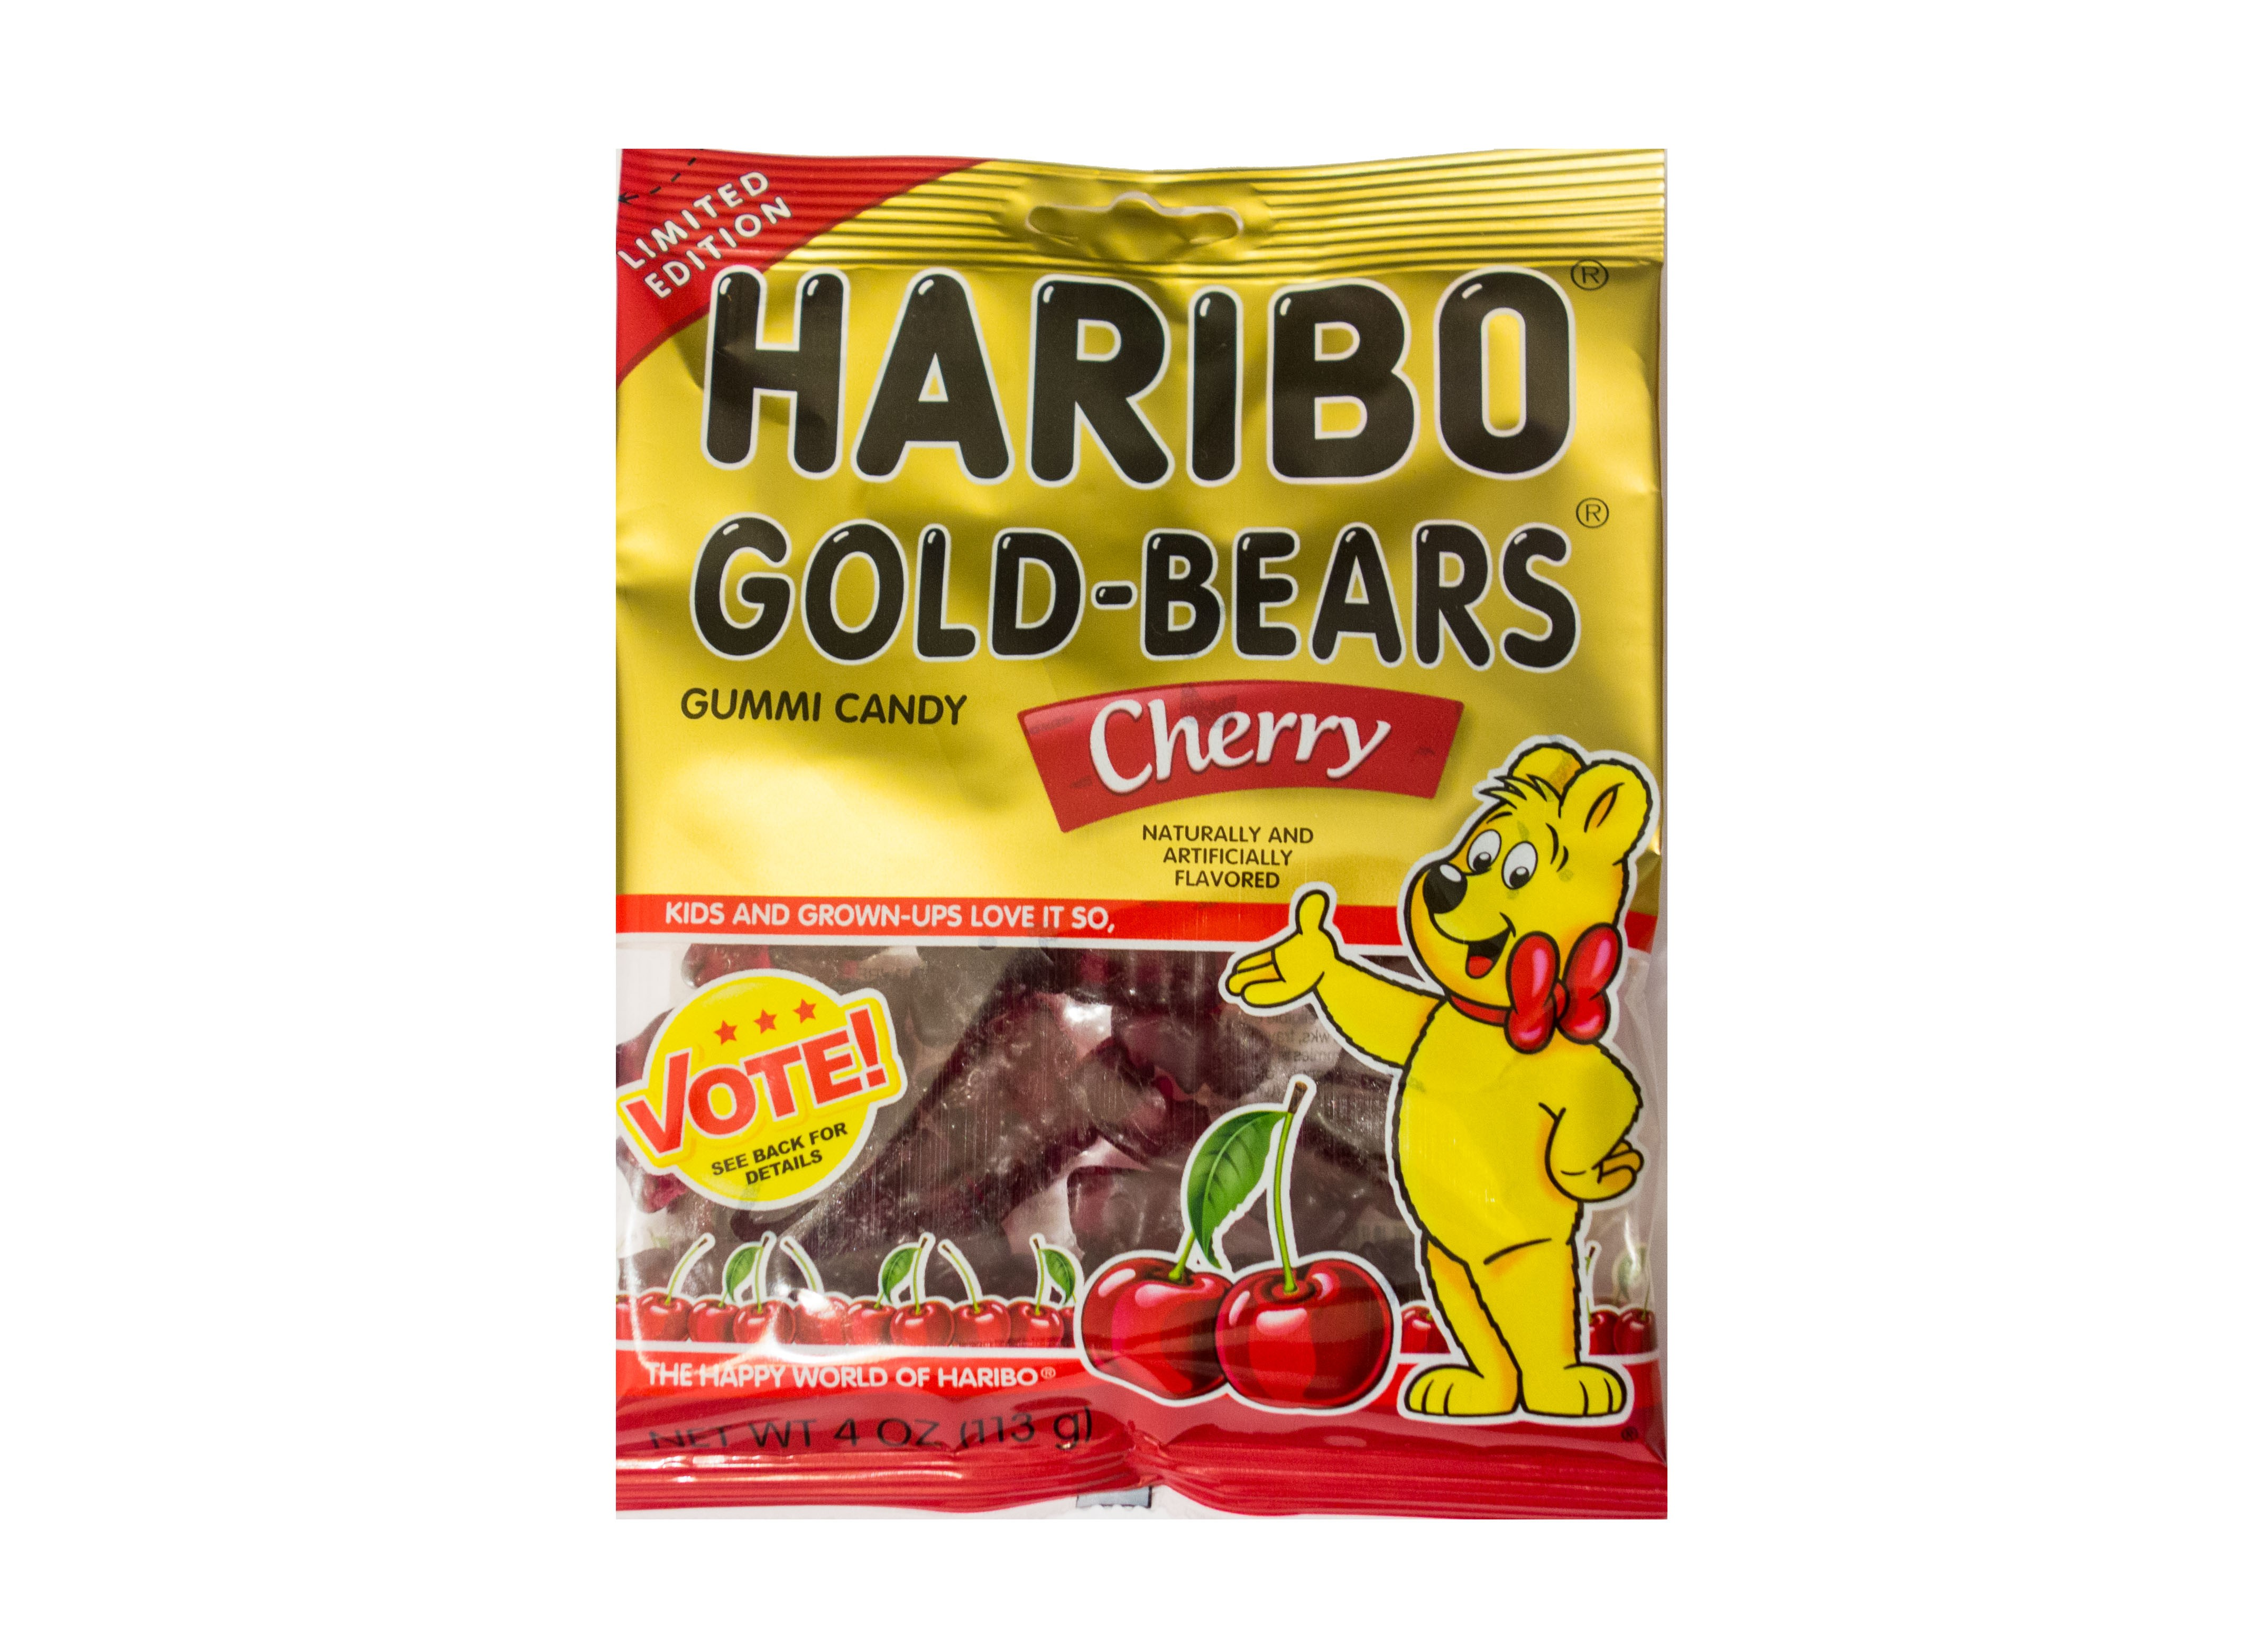 Haribo Gold-Bears Cherry Limited Edition (113g) MHD: 30.04.2018